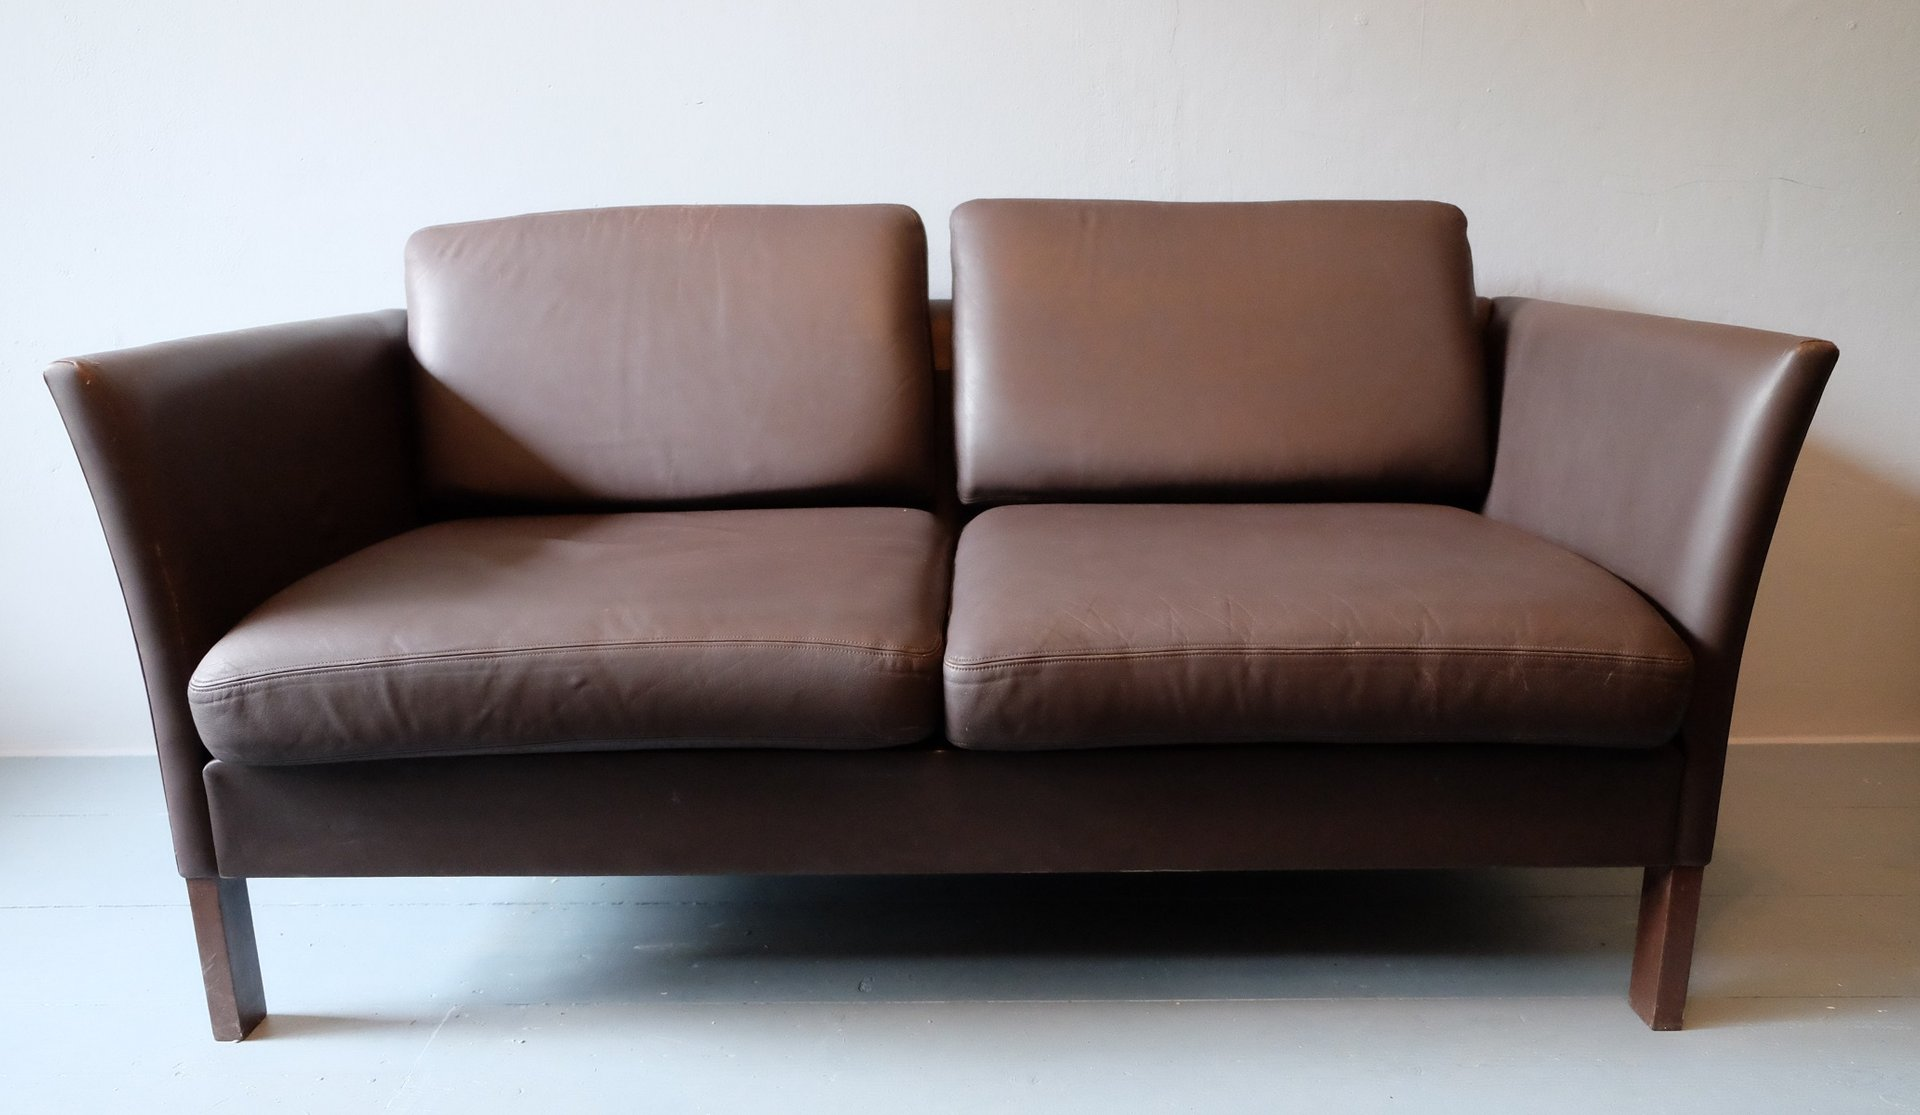 Danish Leather Sofa Loveseat 1970s For Sale At Pamono